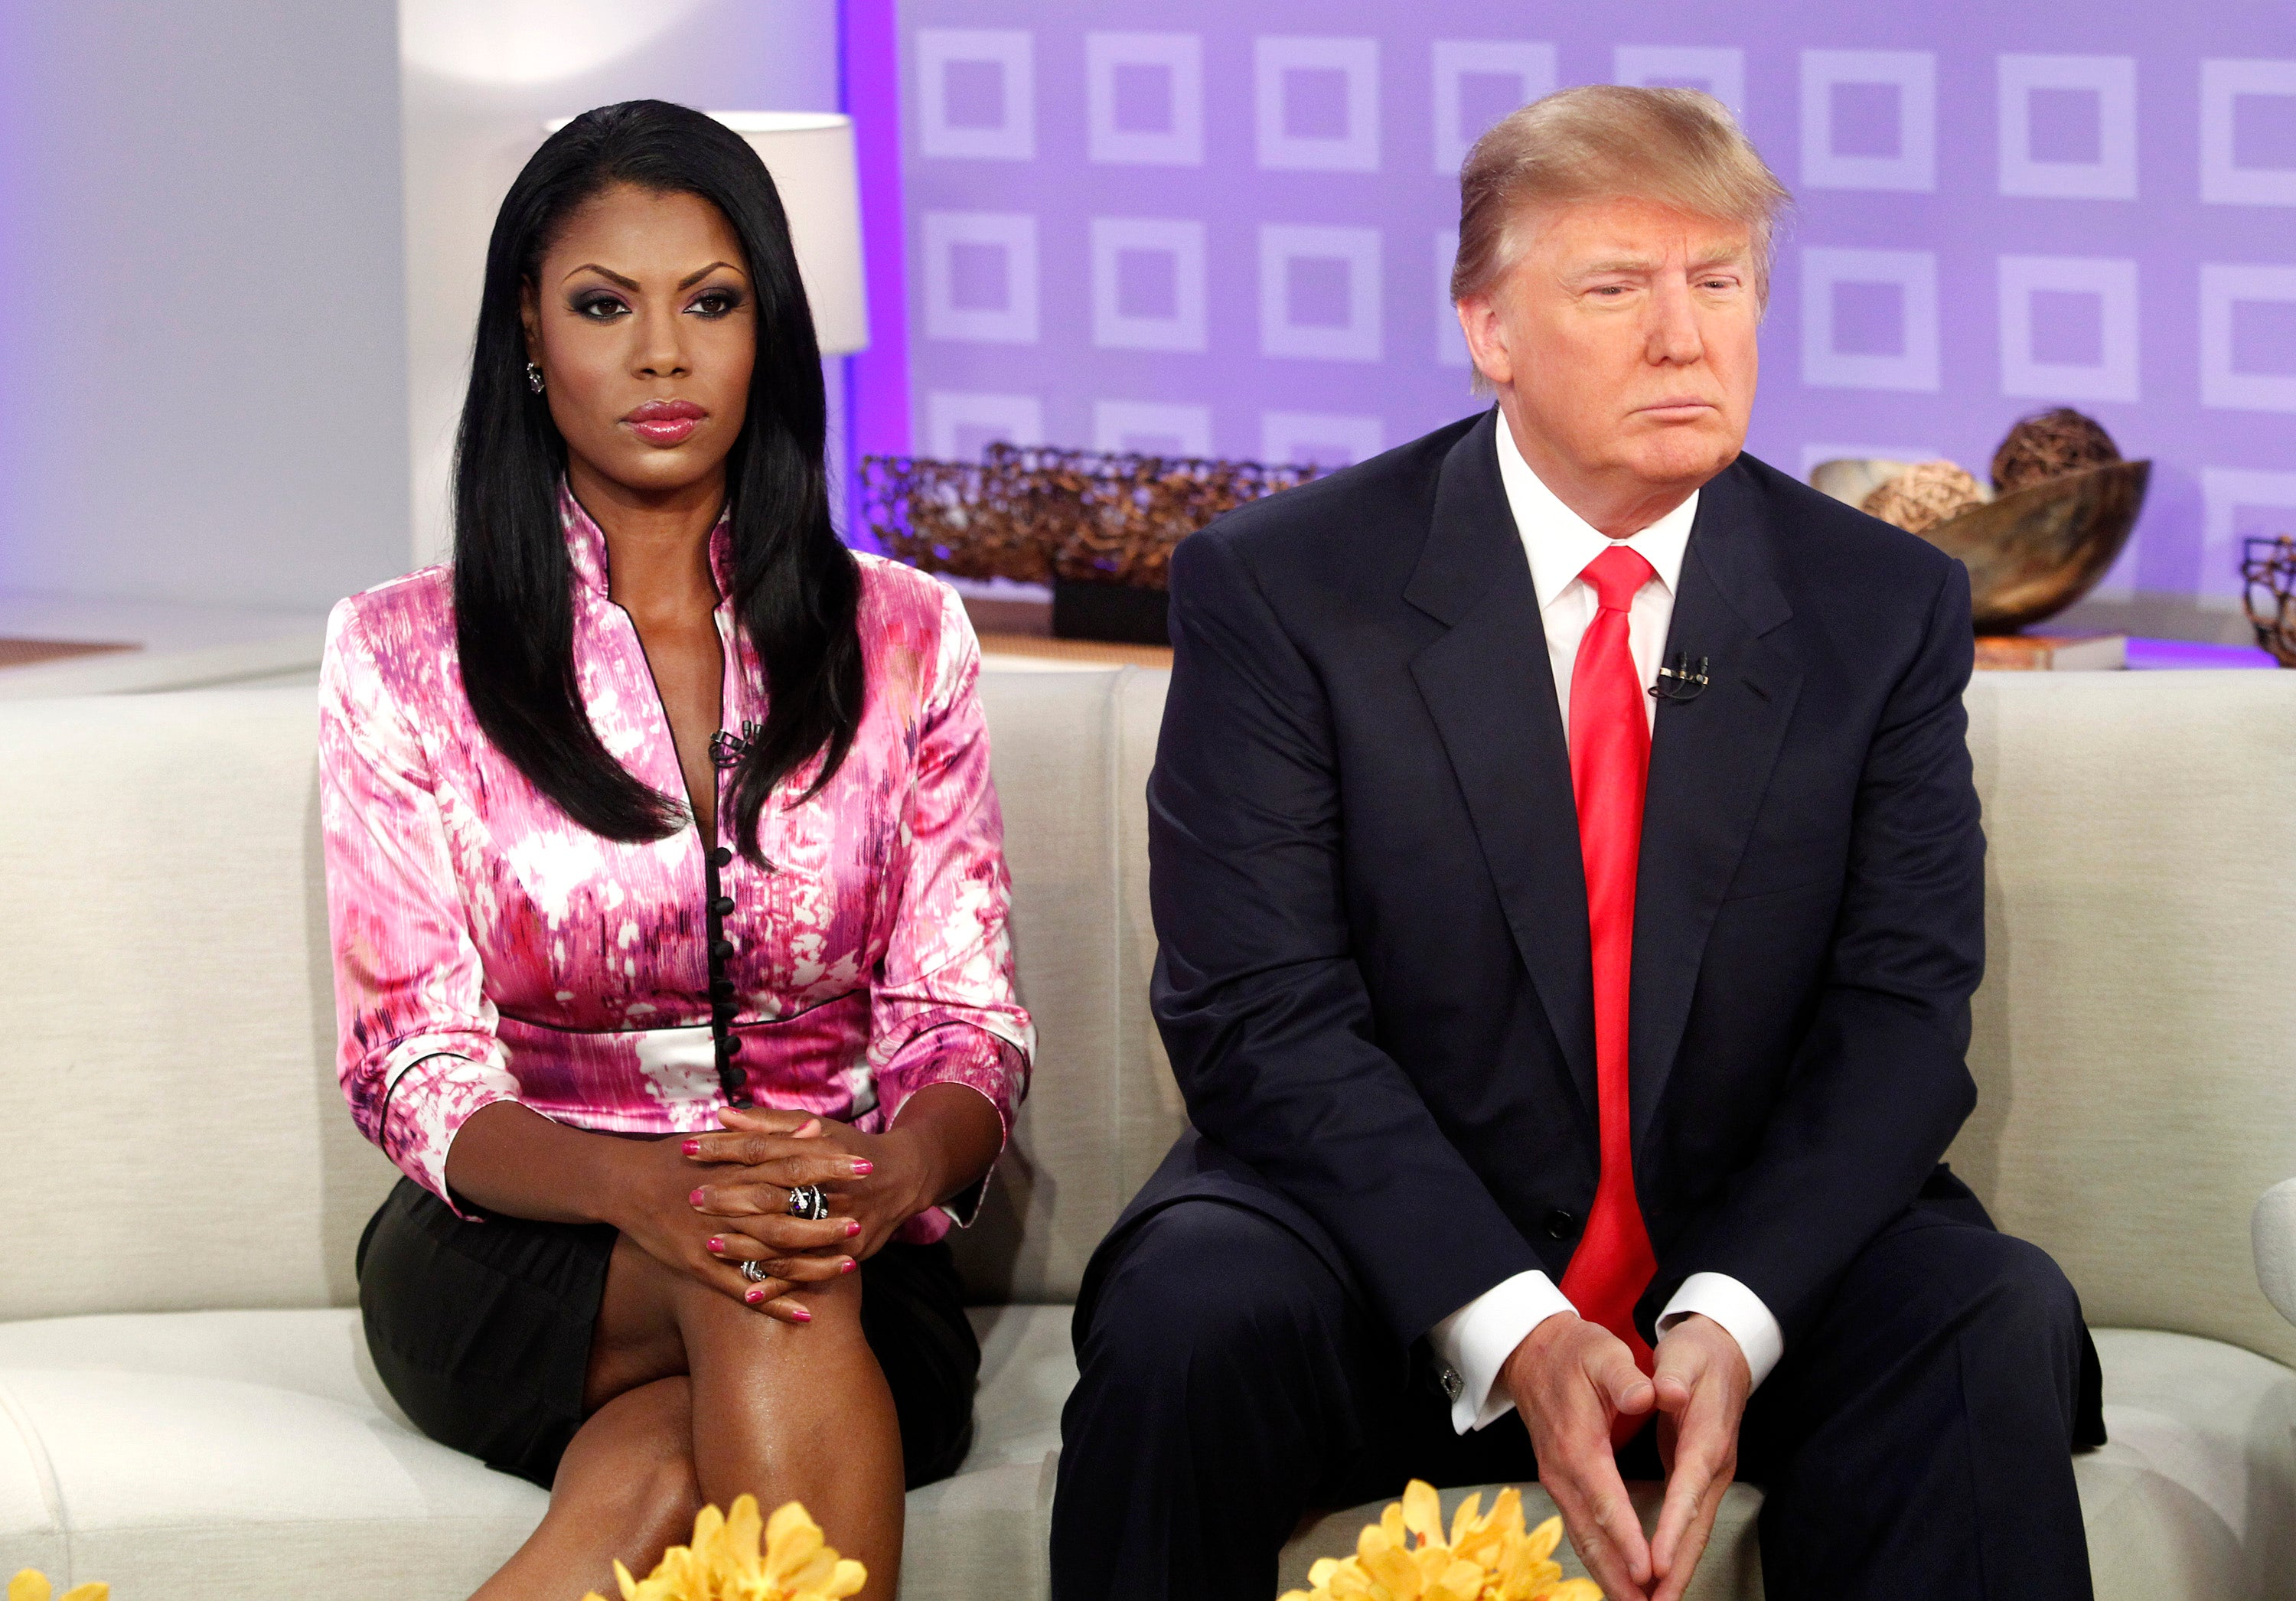 Omarosa Insists She Joined The Trump Campaign To Help Black People